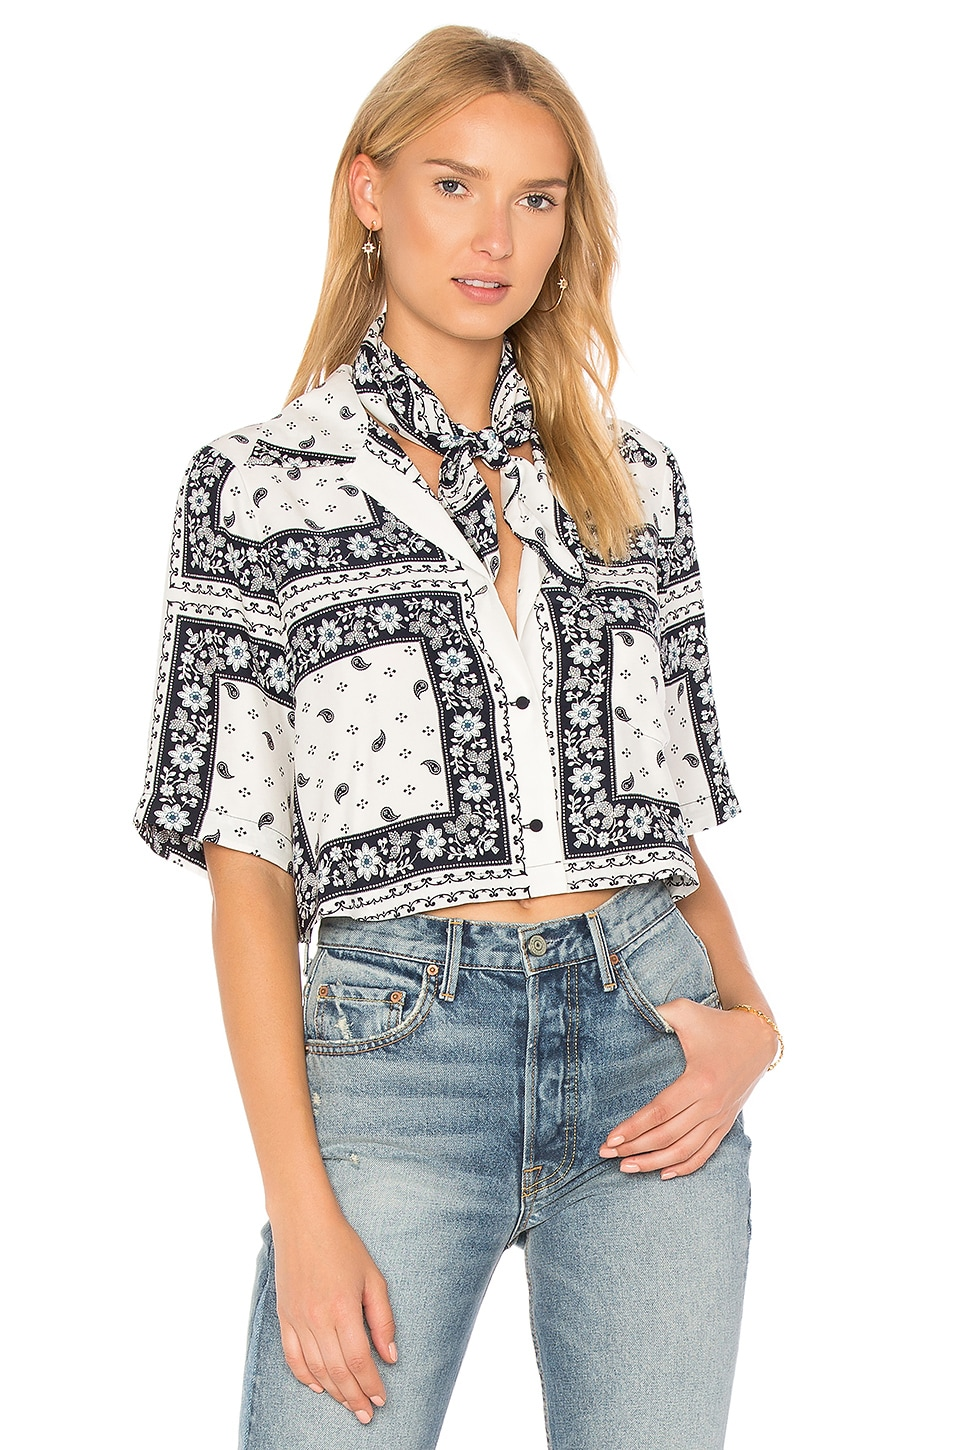 Cropped Dani Top by Cinq A Sept